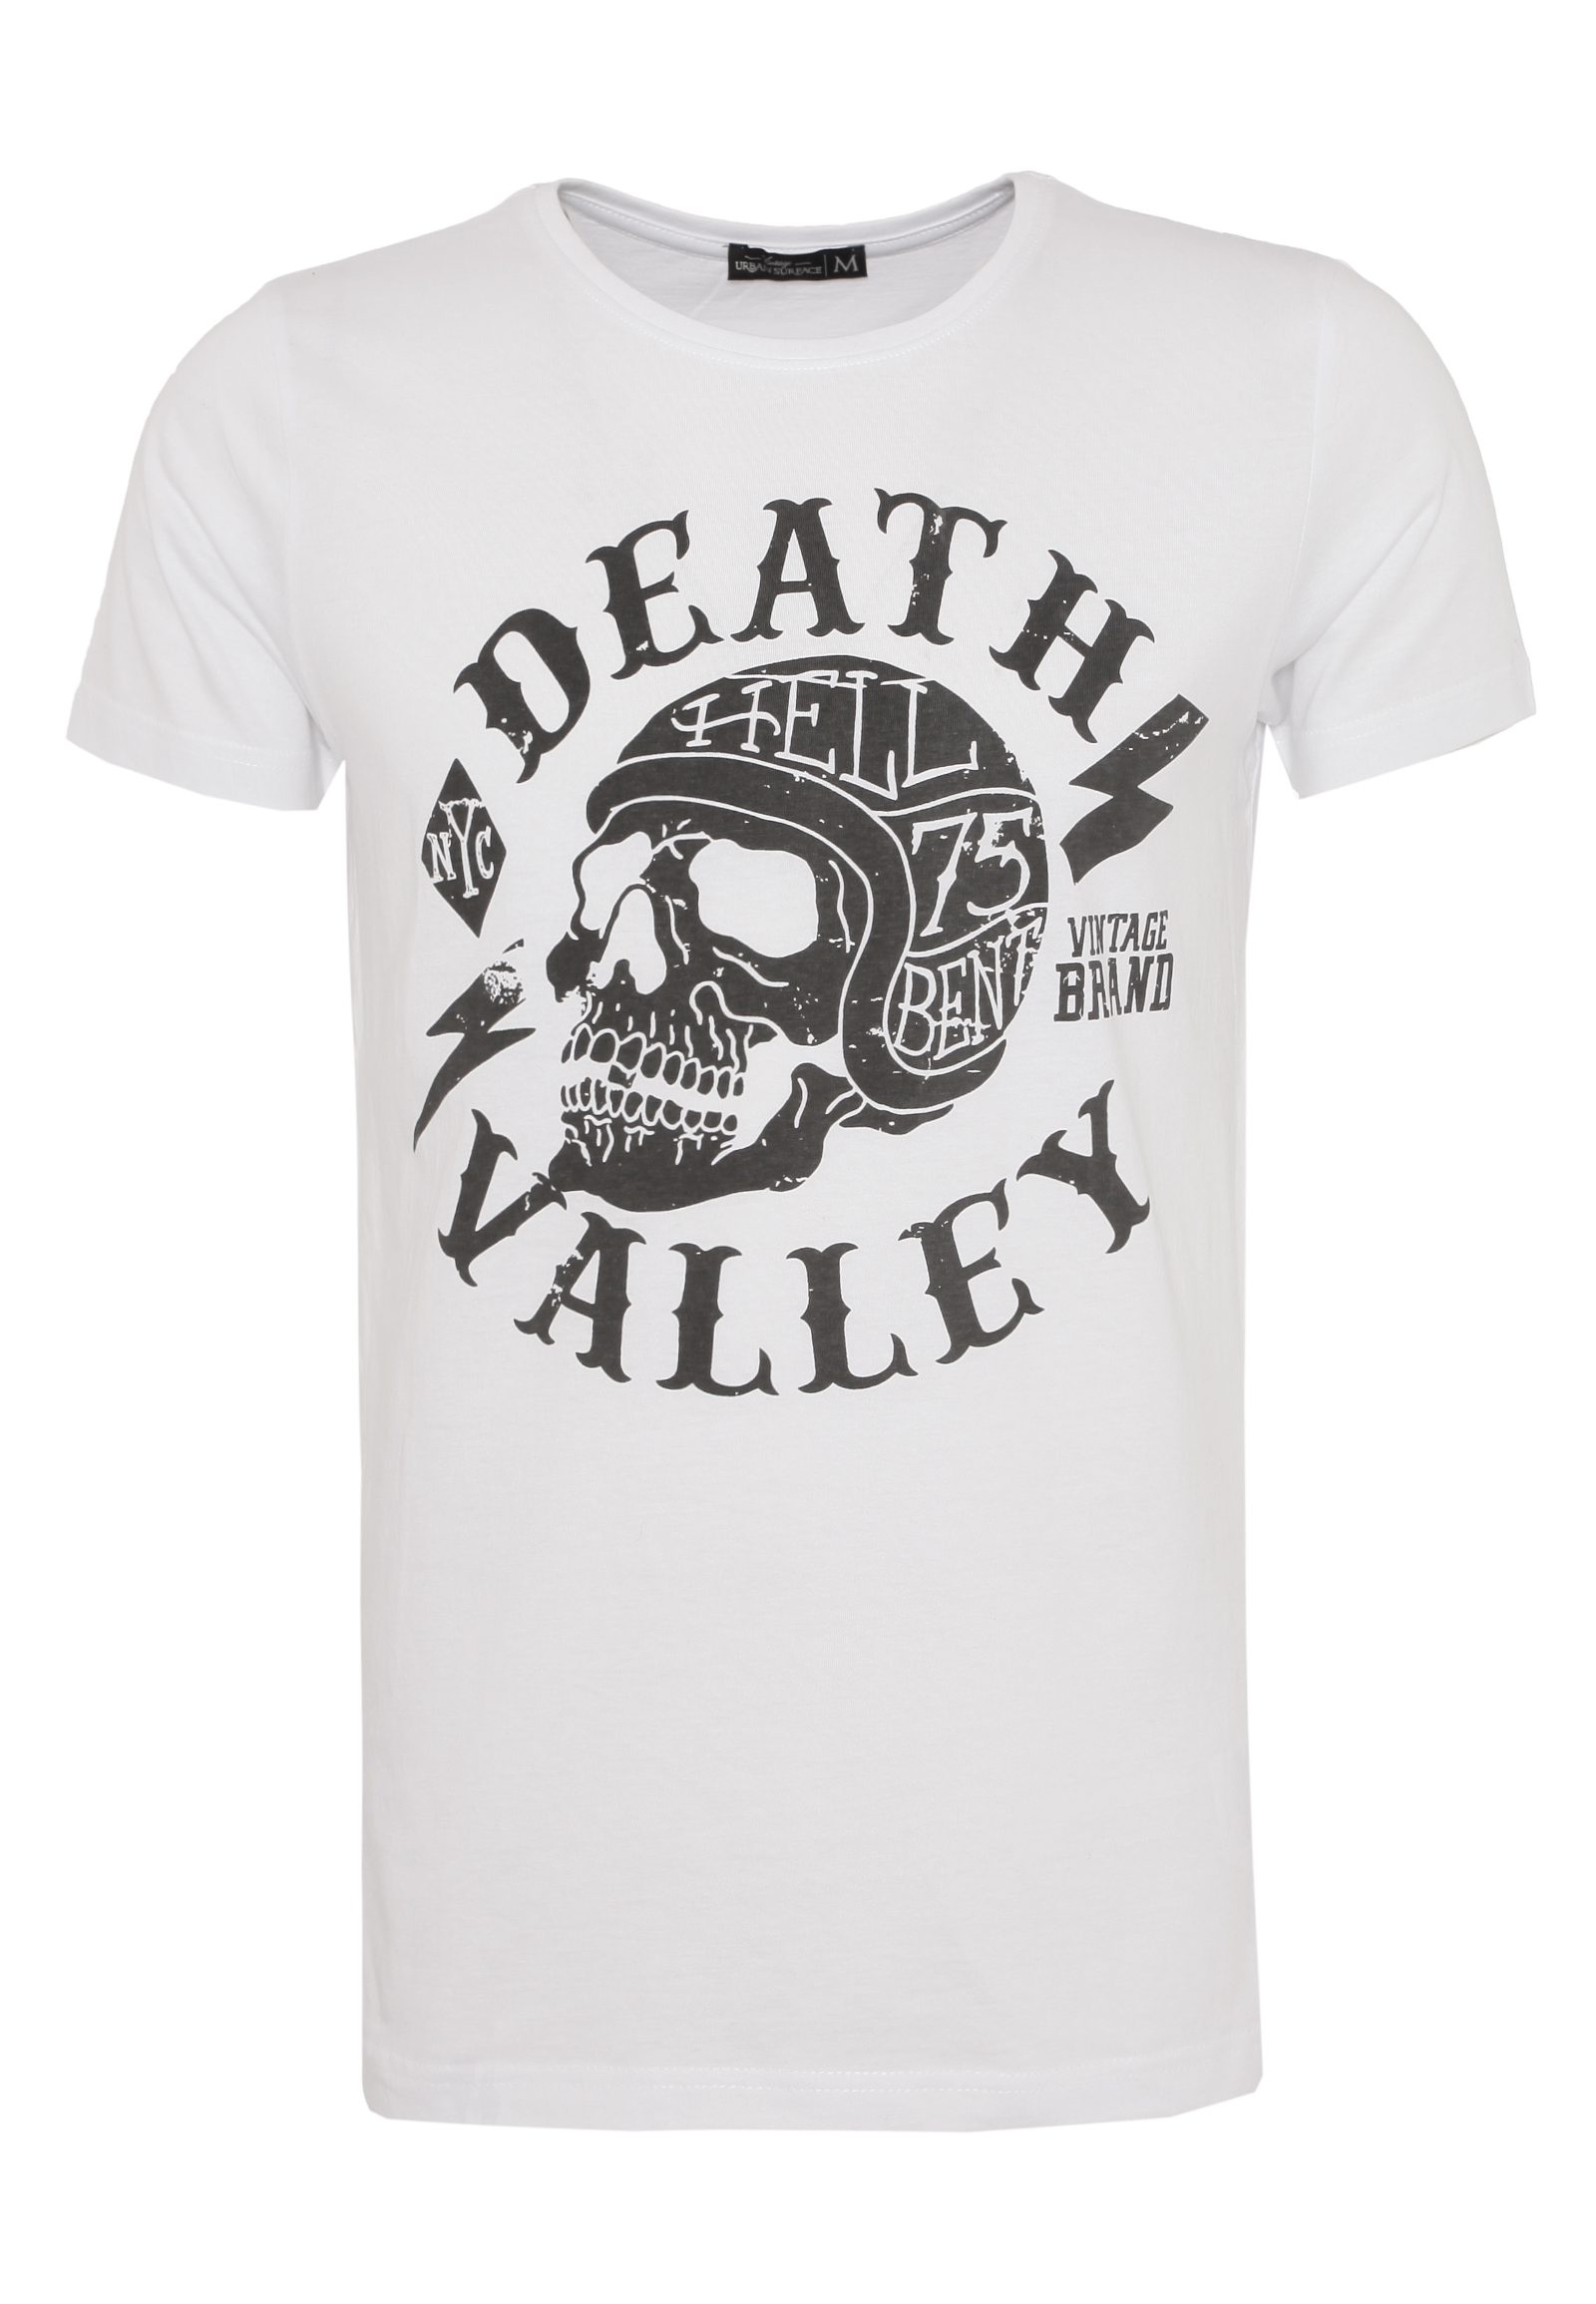 Vorschau: Herren T-Shirt - Death Valley